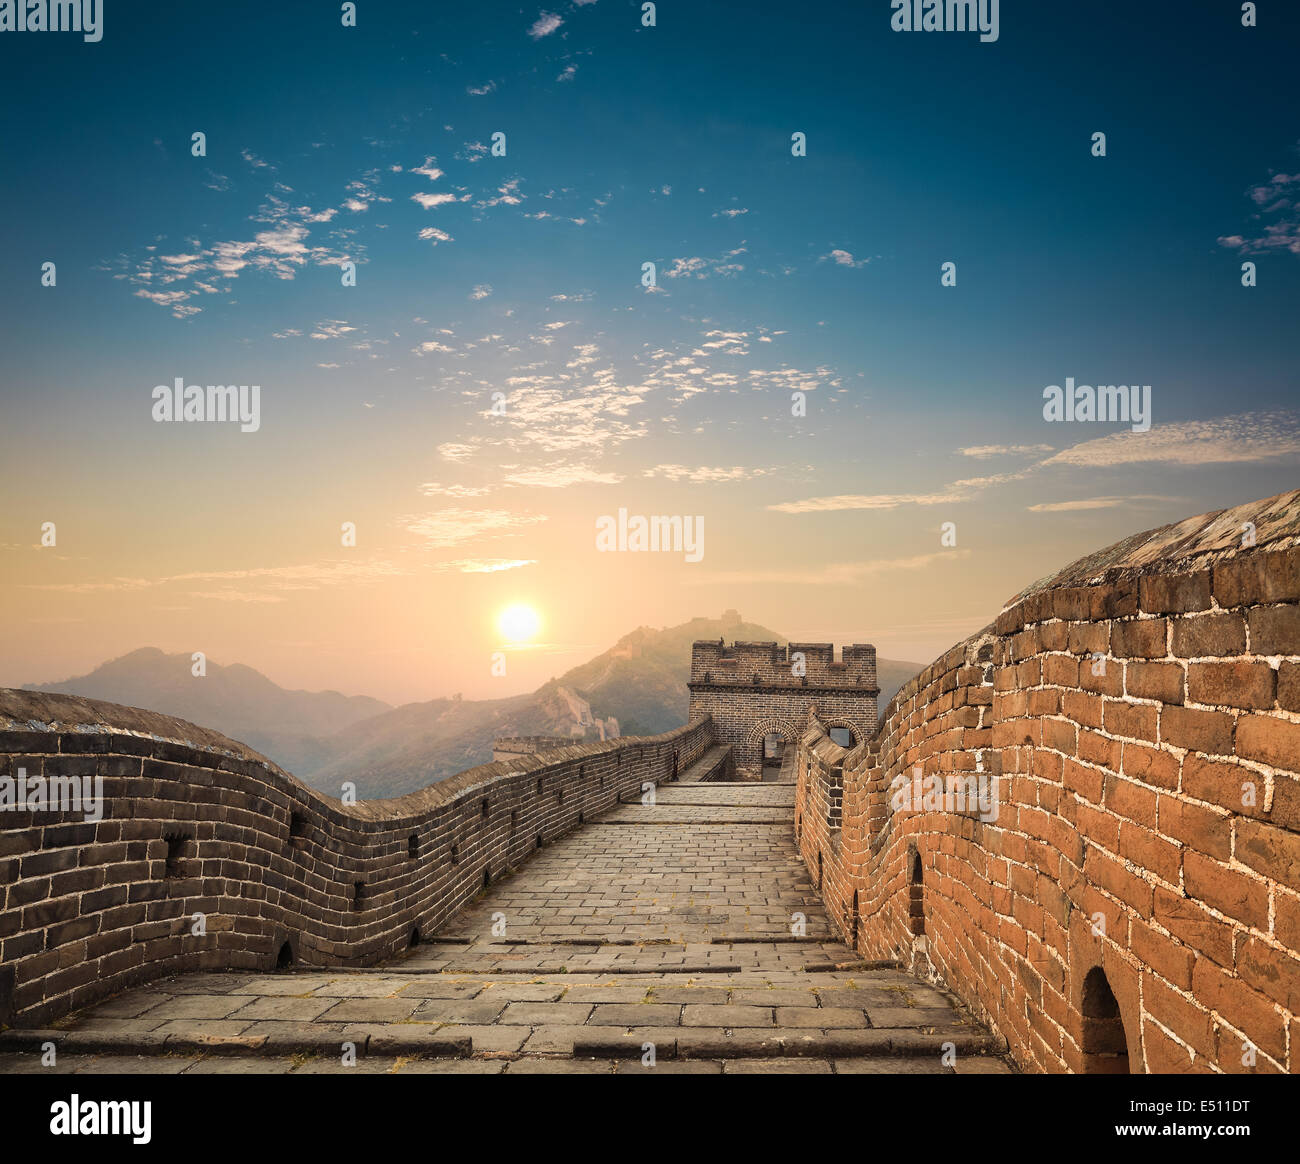 the great wall at dusk - Stock Image